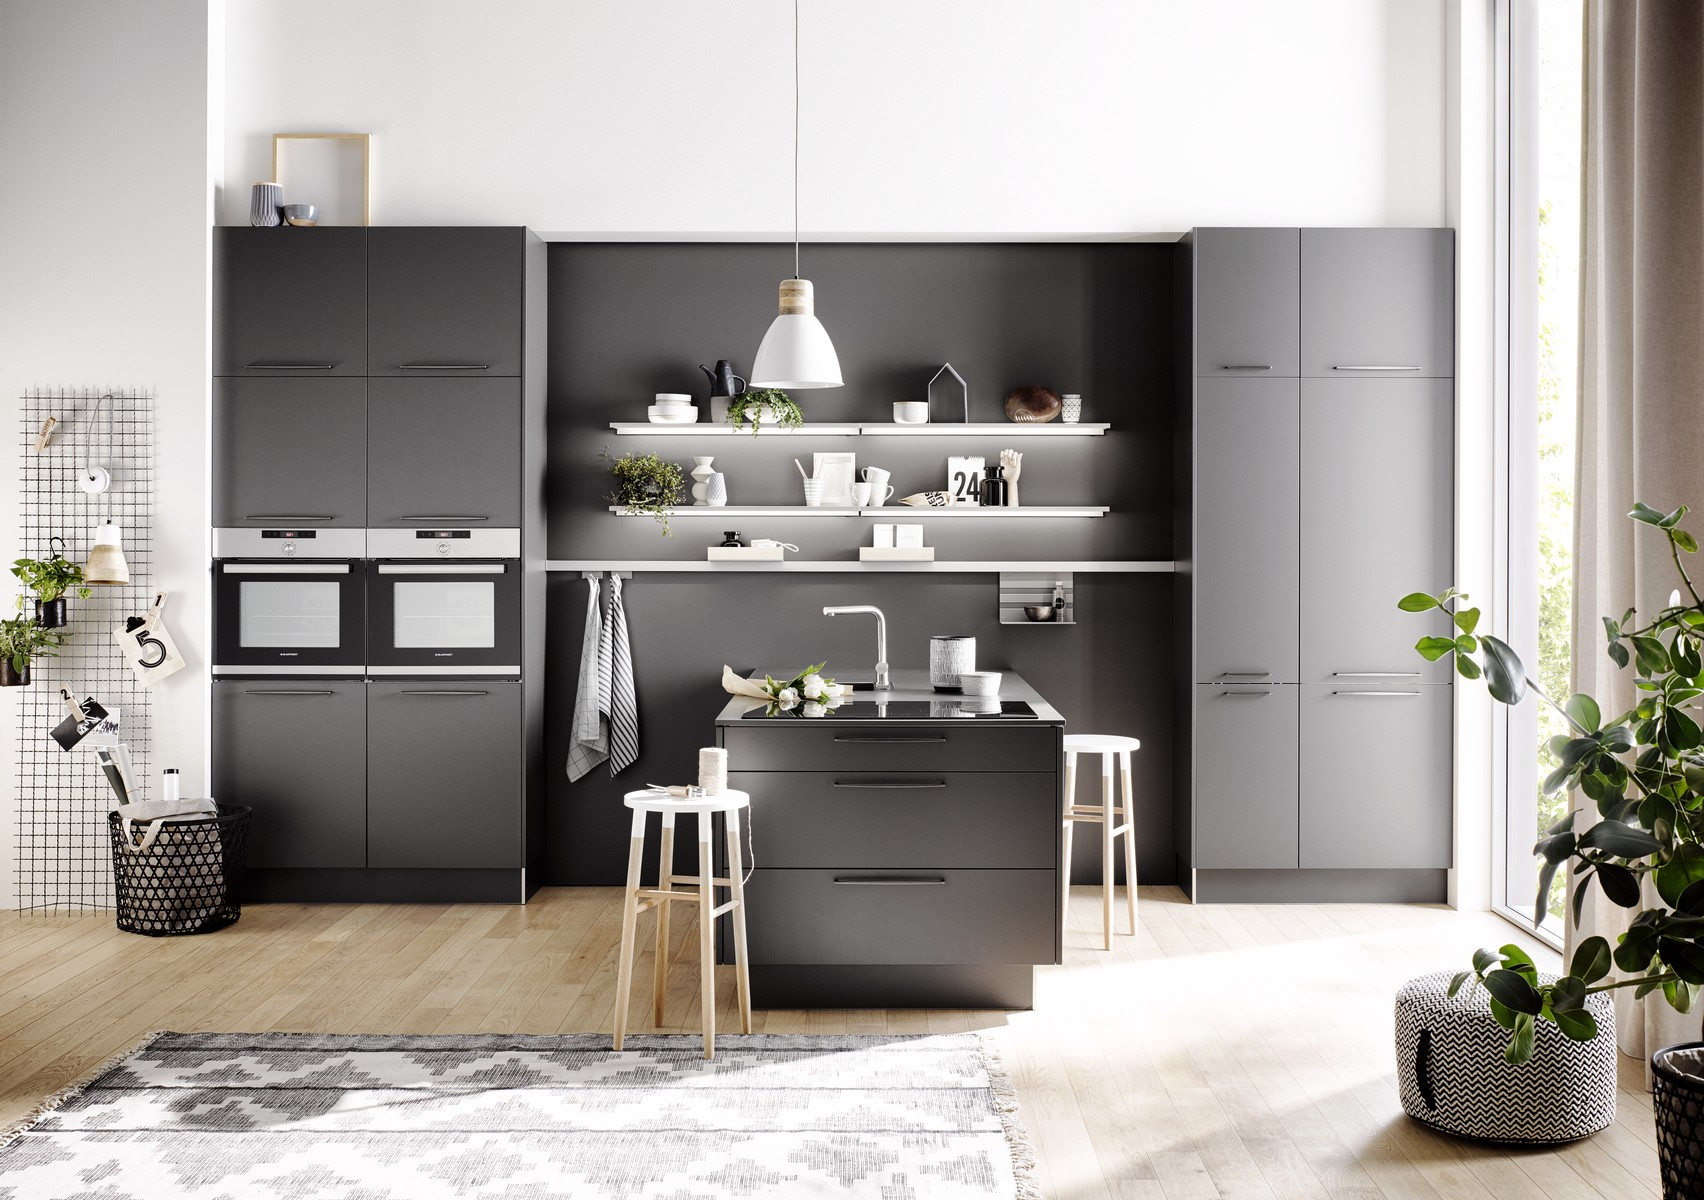 h cker k chen pr sentiert neue fronten in betonoptik k chenhaus thiemann. Black Bedroom Furniture Sets. Home Design Ideas